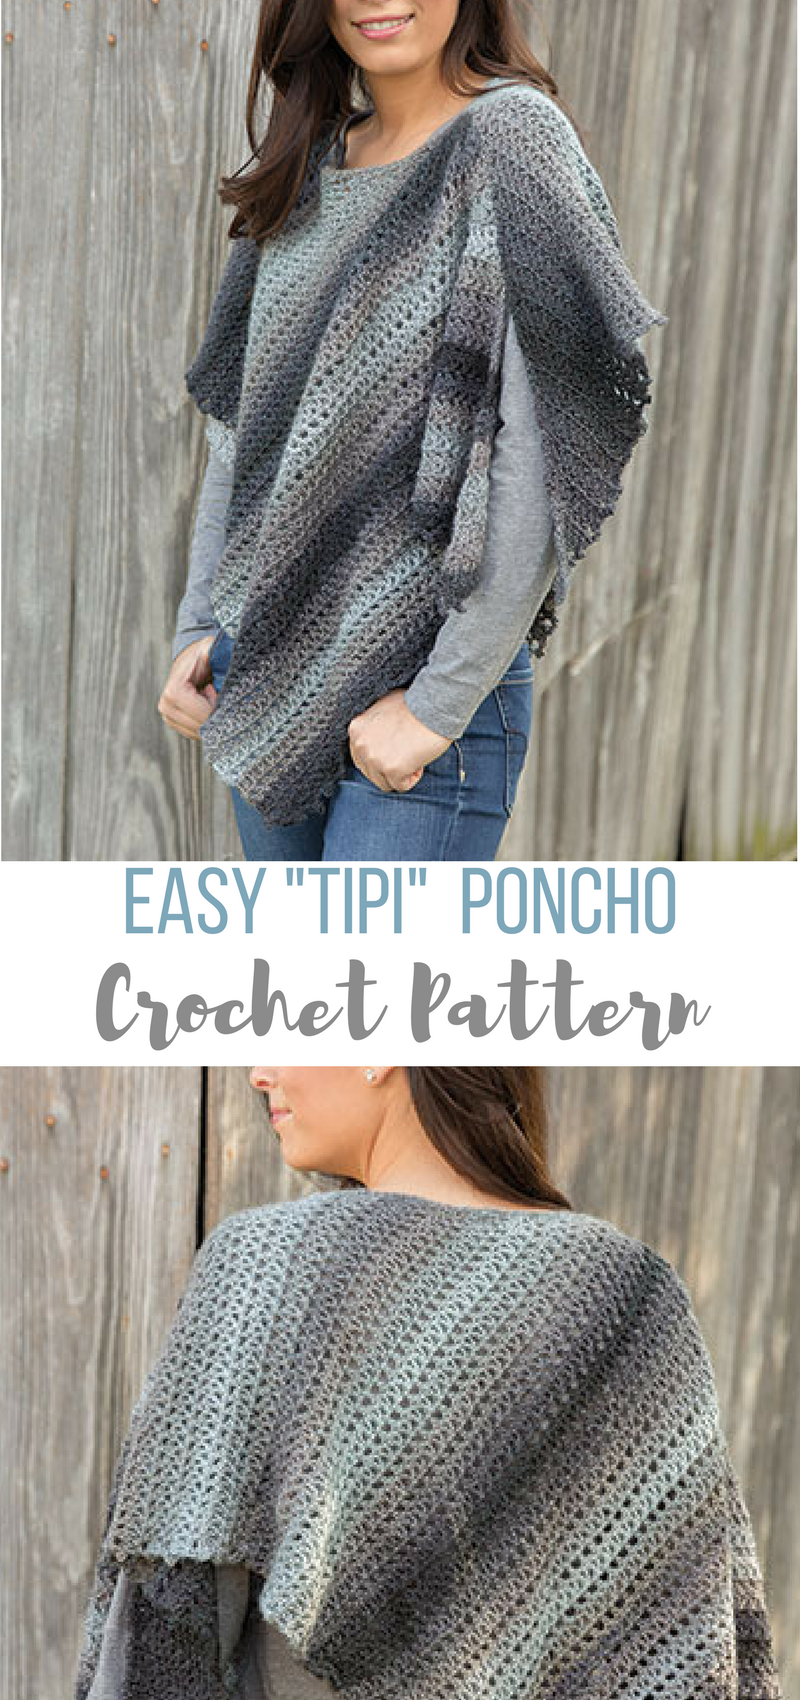 this is such an easy crochet poncho pattern - just 2 triangles ...